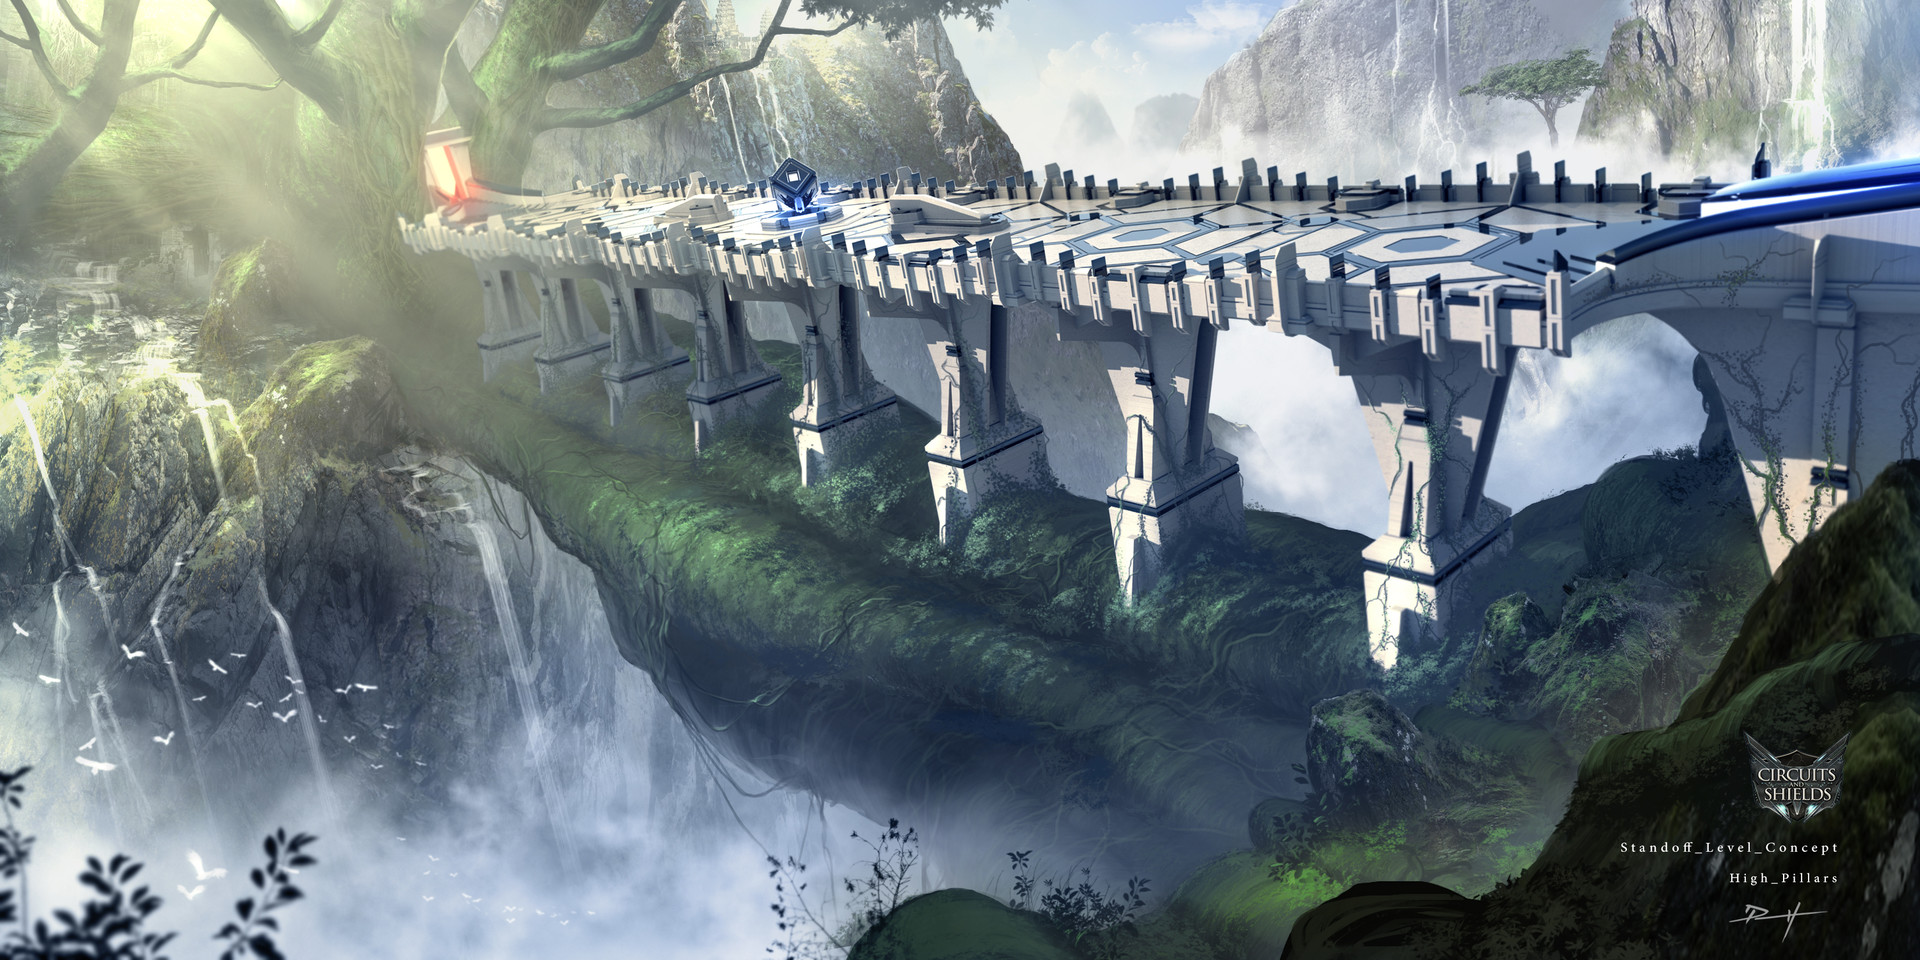 Daniel pellow grand tree gorge level concept 3 3 high pillars final